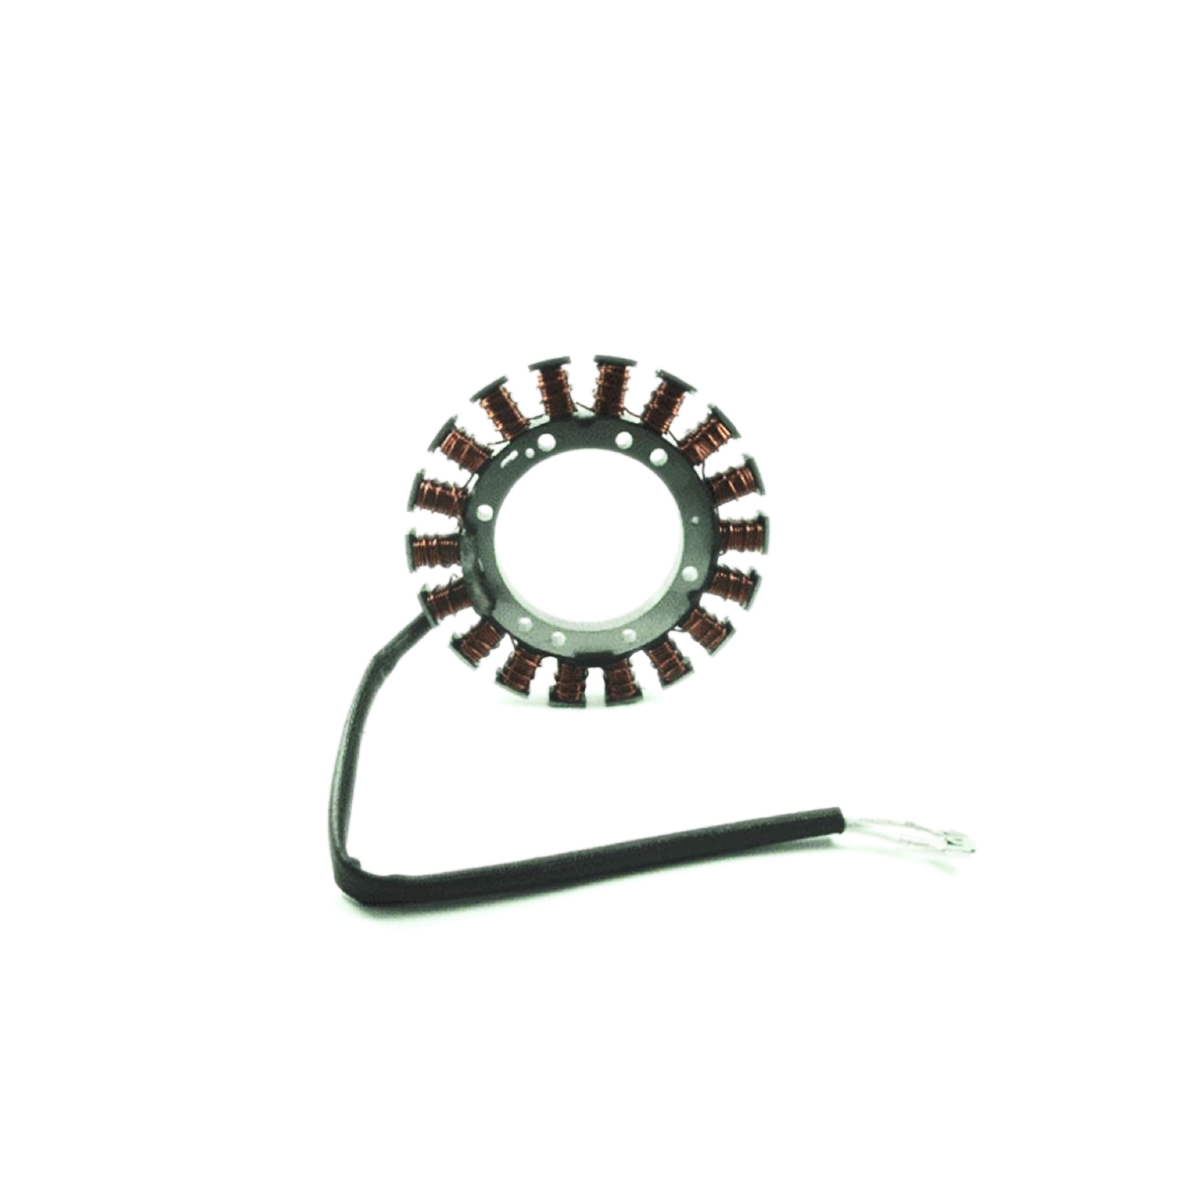 Generac Stator, Outline with Lugs-14.25 inch 0F1153B